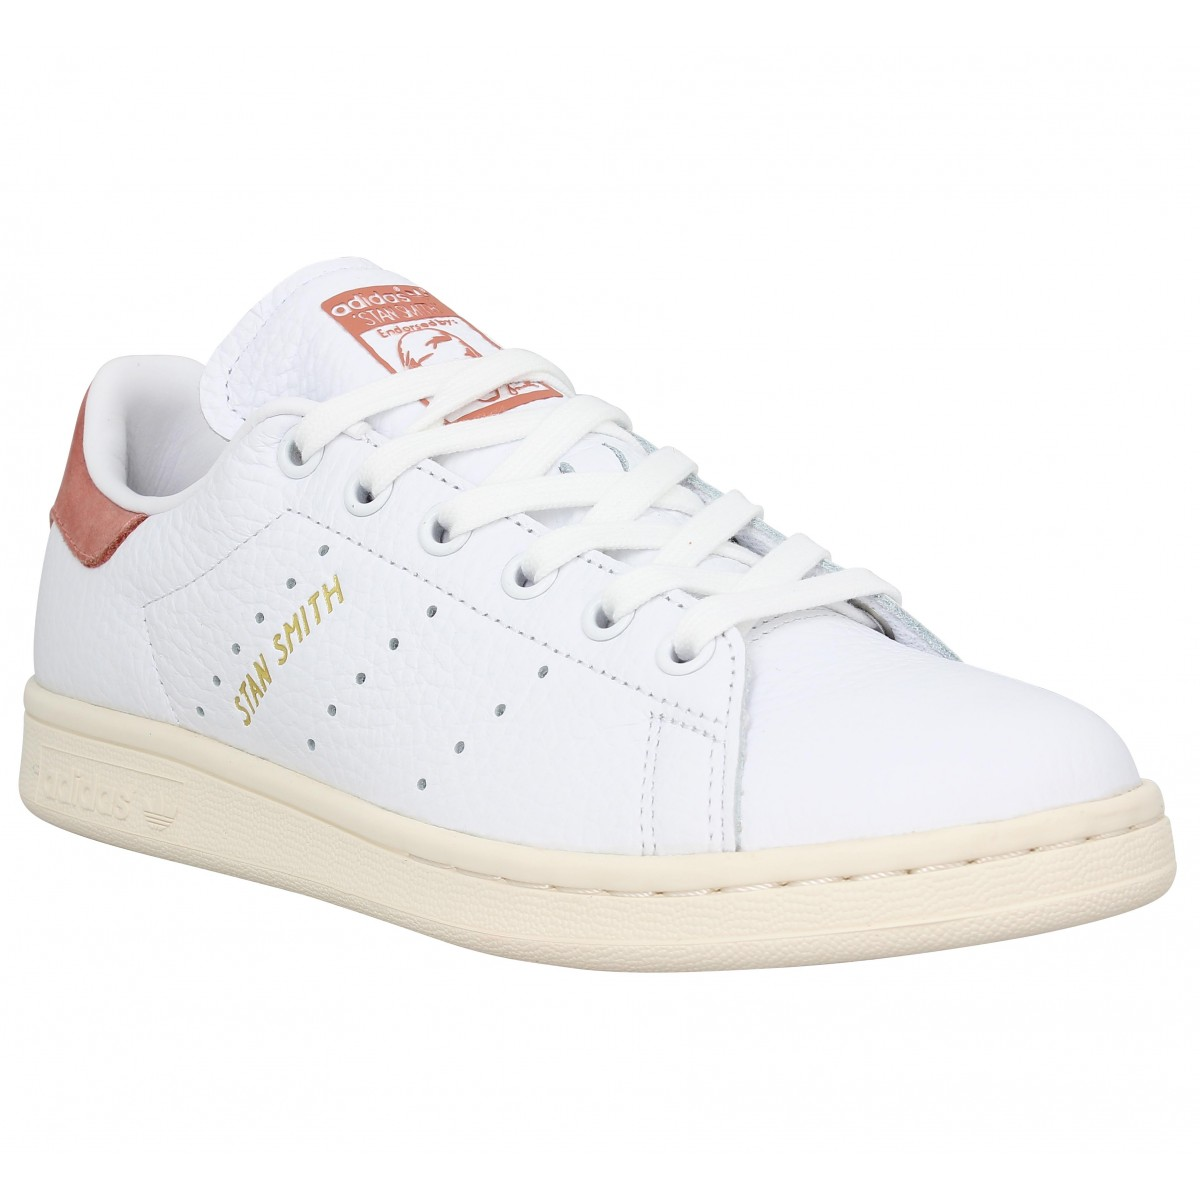 ADIDAS Stan Smith cuir Femme Blanc Rose